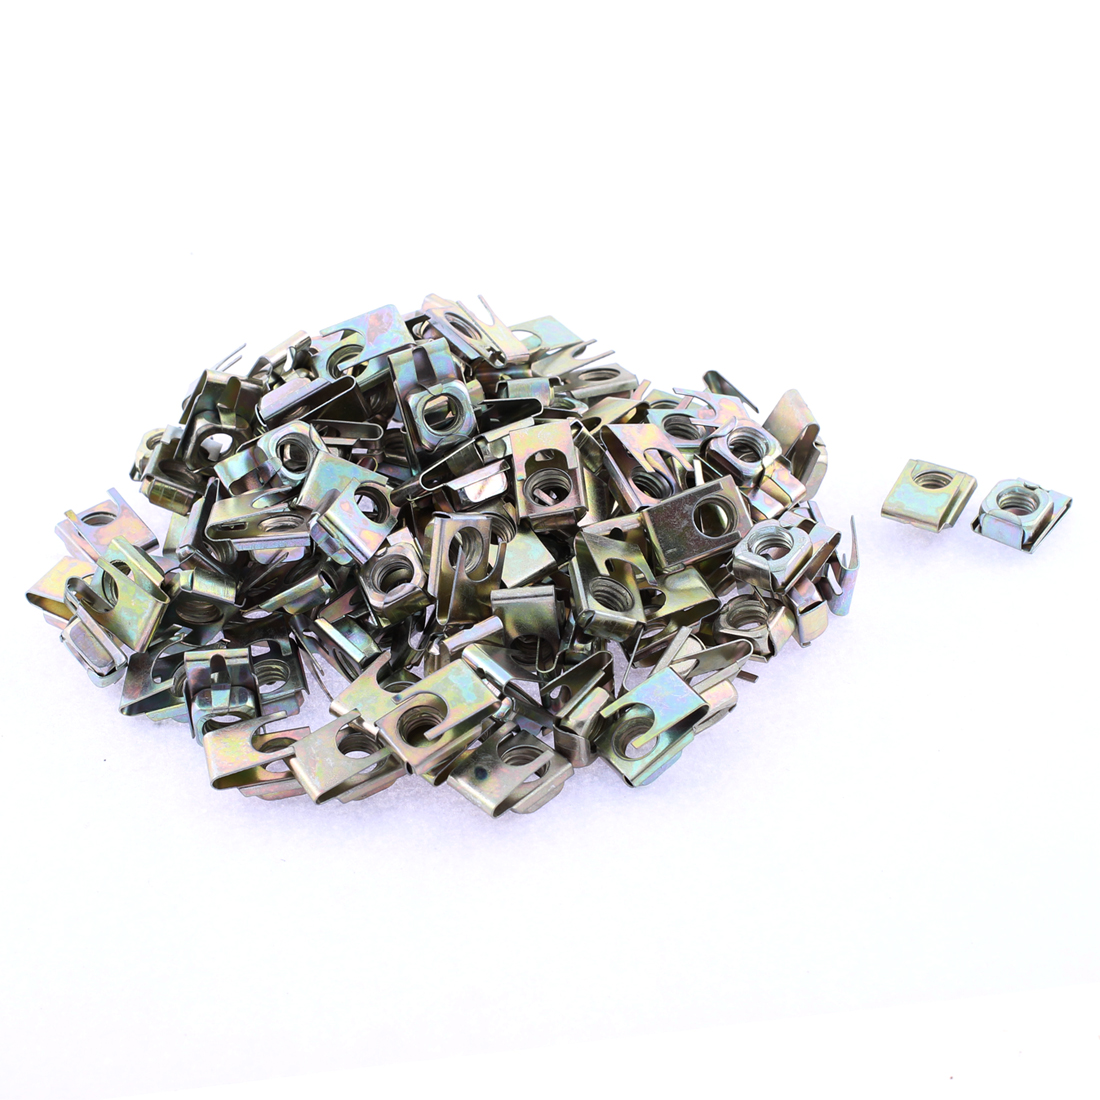 100 Pcs 22mm x 16mm Metal Plate U-Type Clips Speed Nuts for Auto Panel Fender